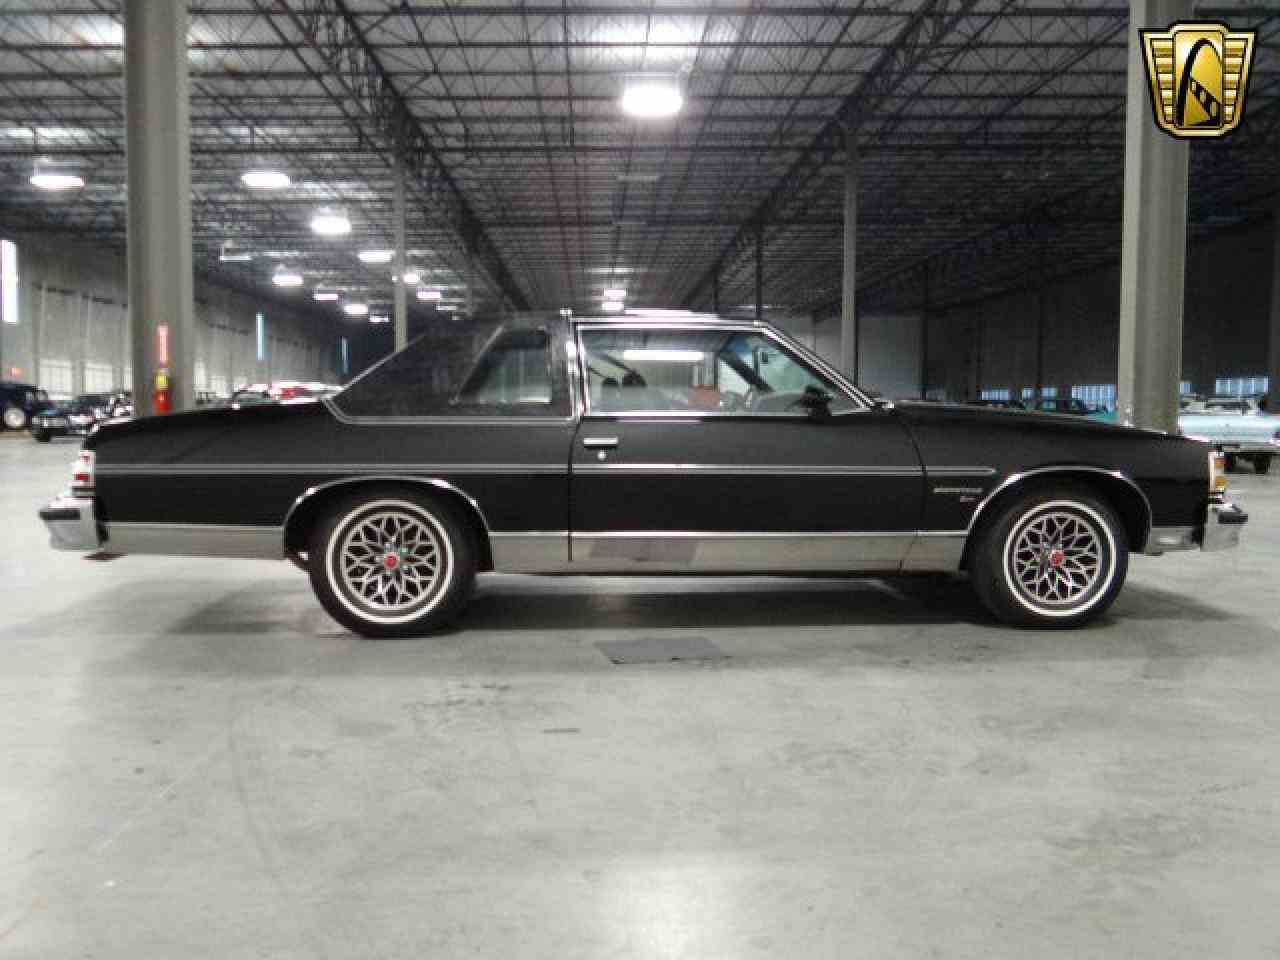 Large Picture of '79 Bonneville located in Alpharetta Georgia - $17,595.00 Offered by Gateway Classic Cars - Atlanta - KOIW